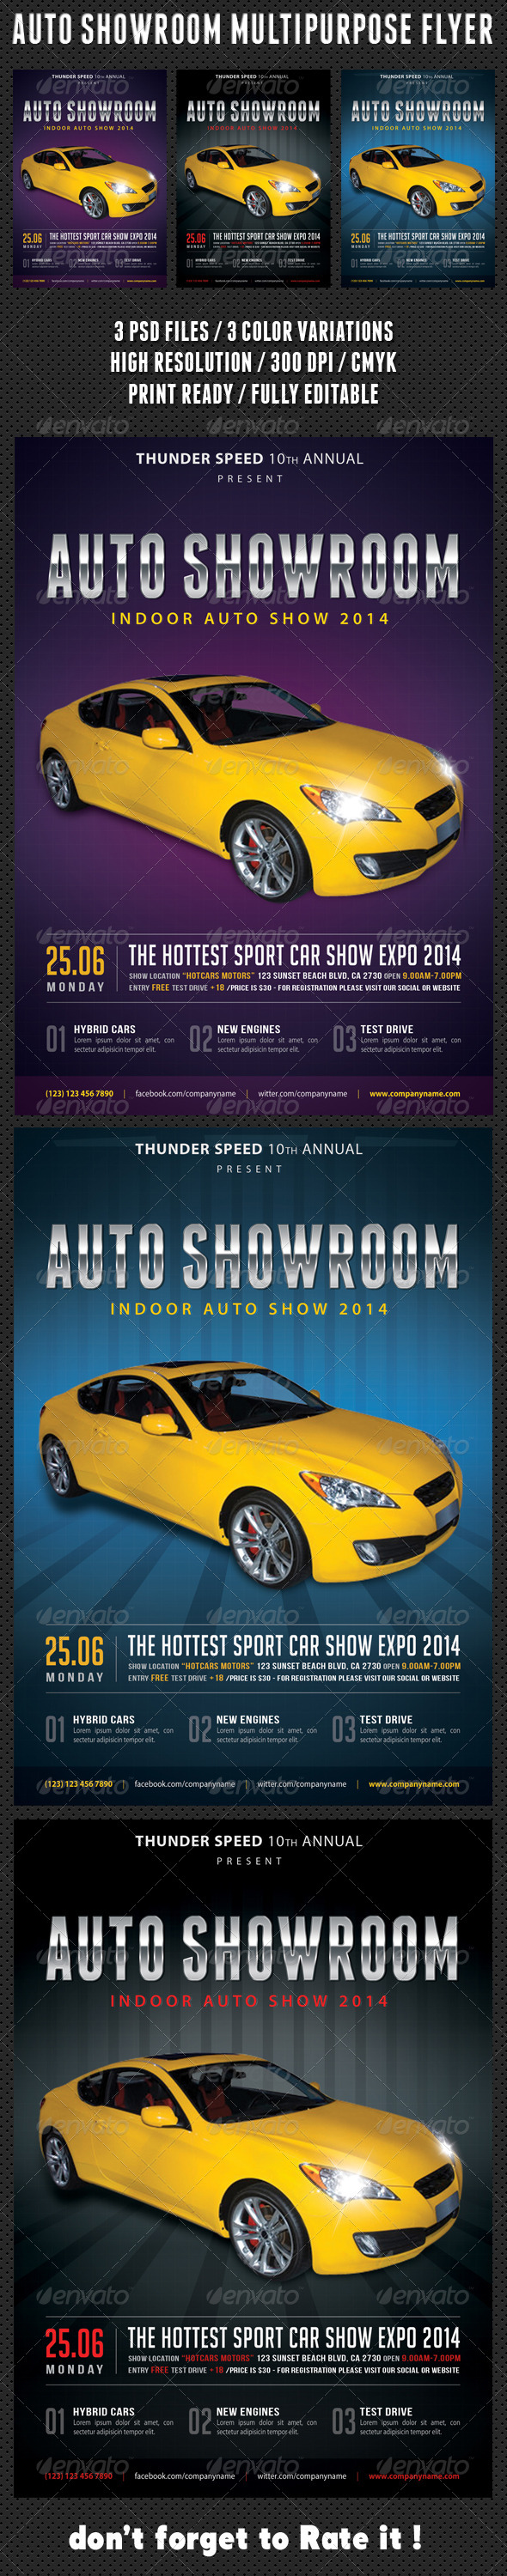 Auto Showroom Multipurpose Flyer 01